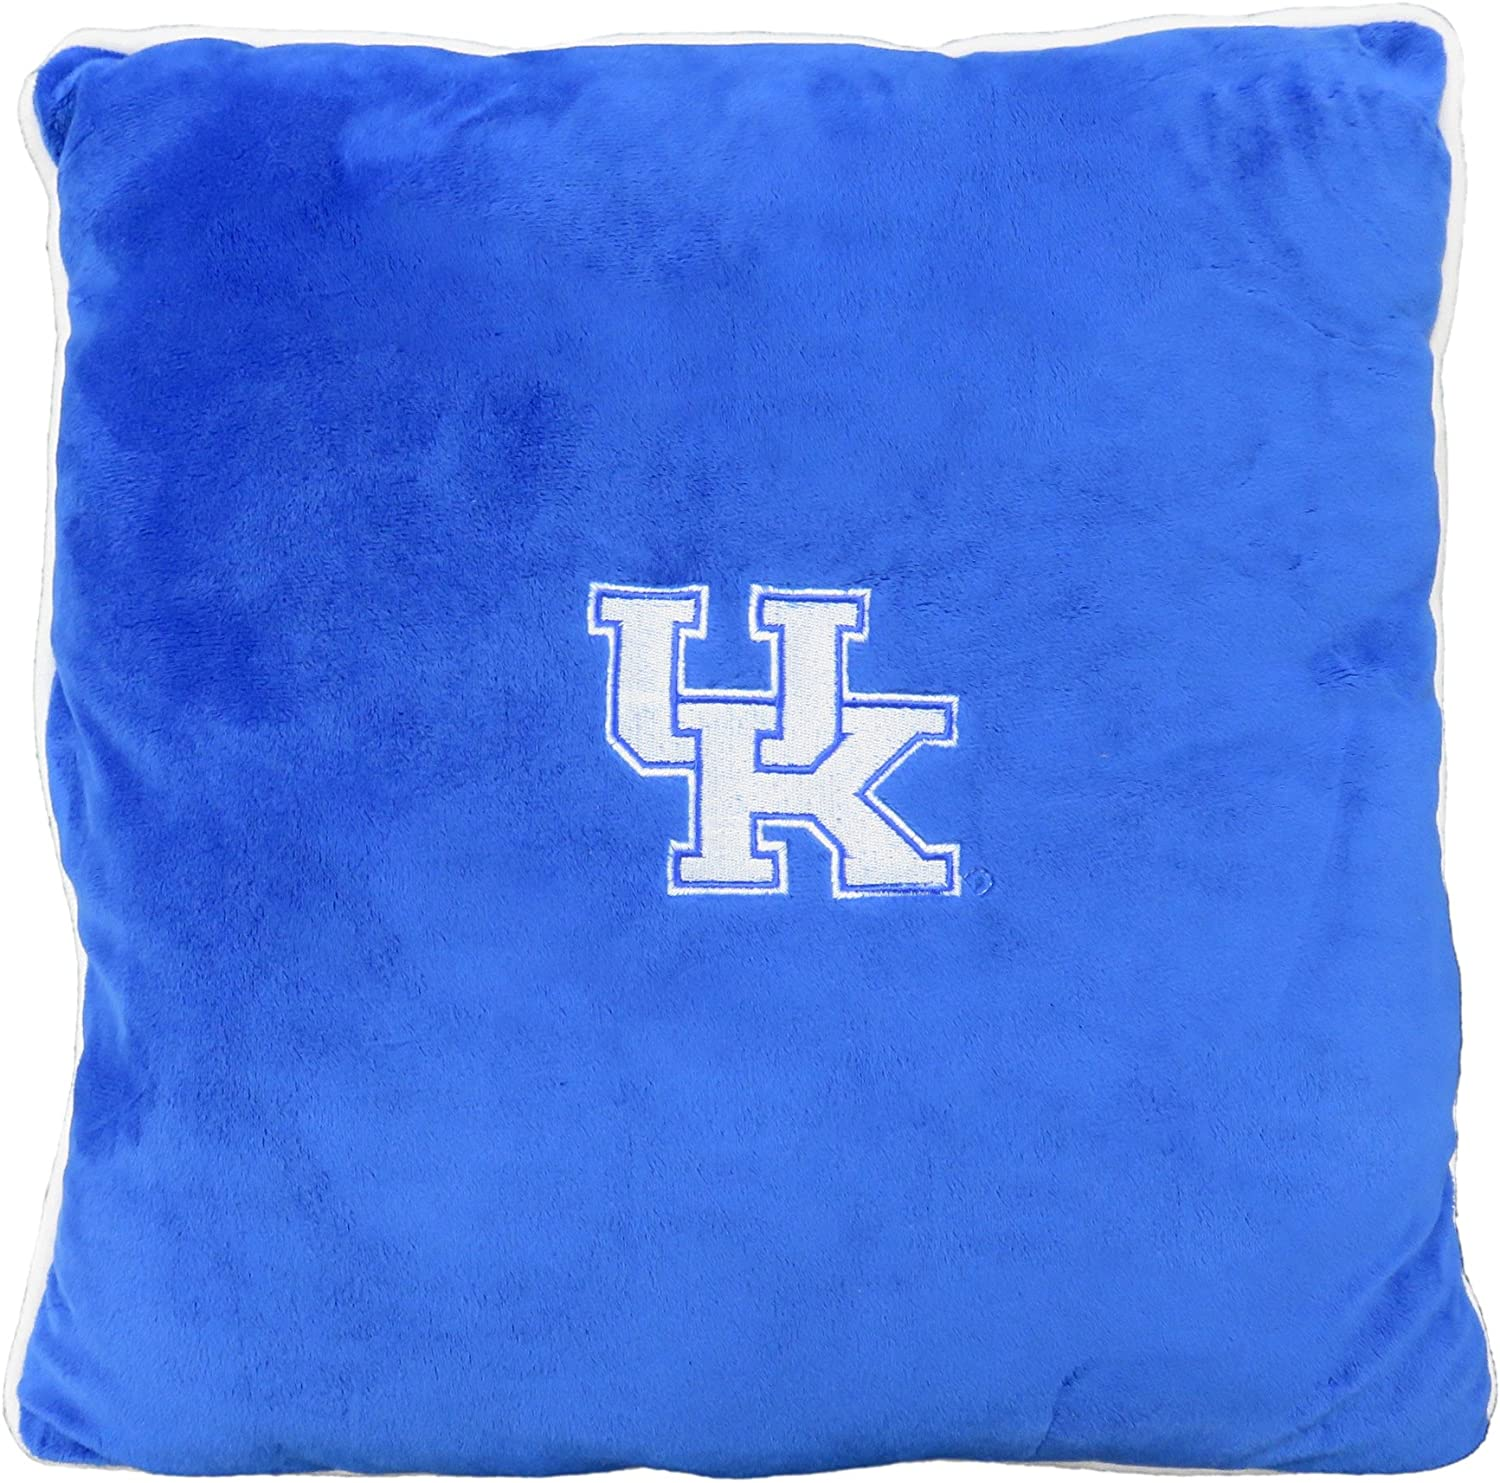 Pets First Collegiate Pet Accessories, Dog Pillow, Kentucky Wildcats, 16 x 16 x 3 inches